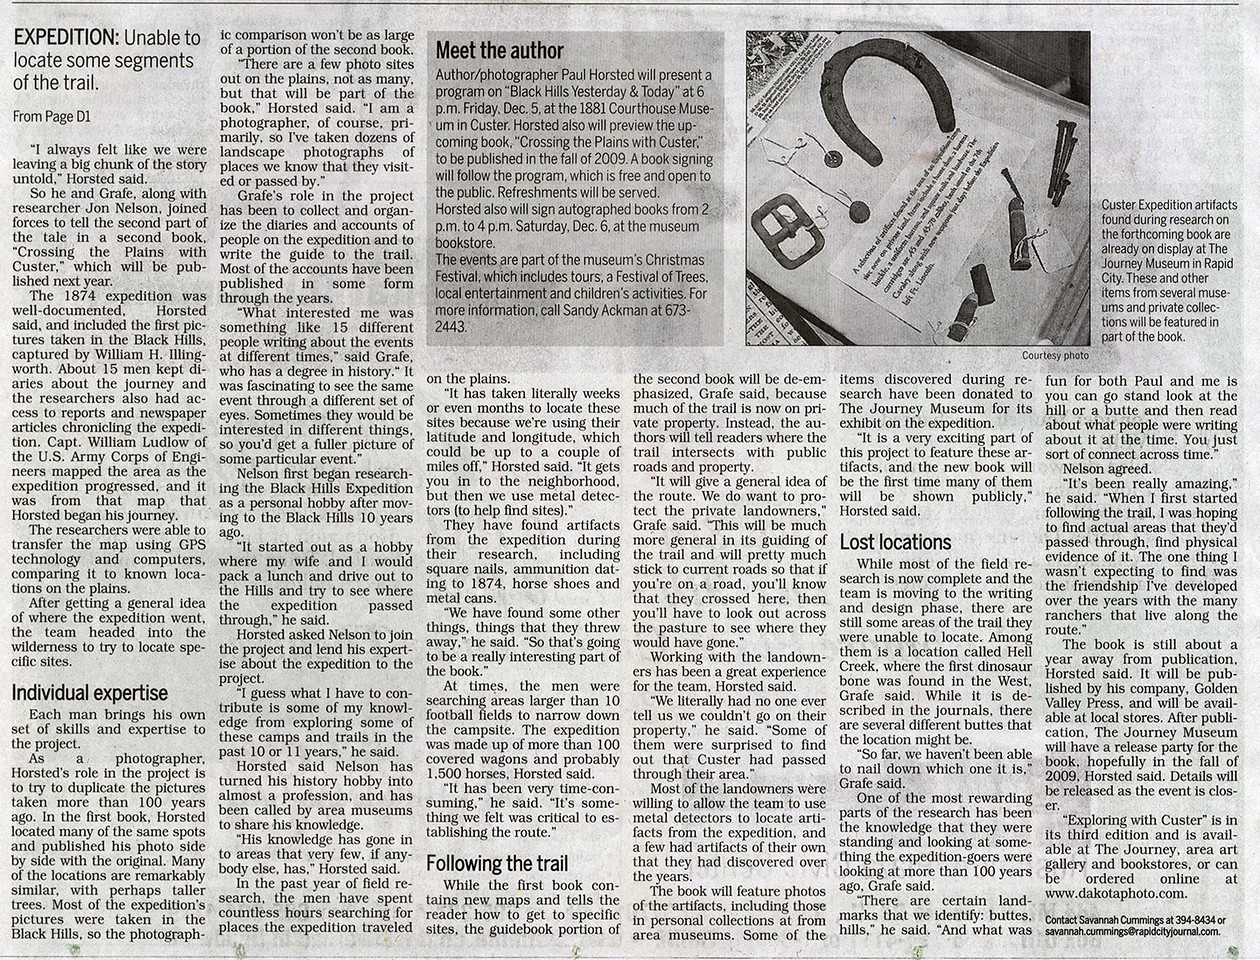 Continuation of Nov. 30, 2008 Rapid City Journal story about the project.